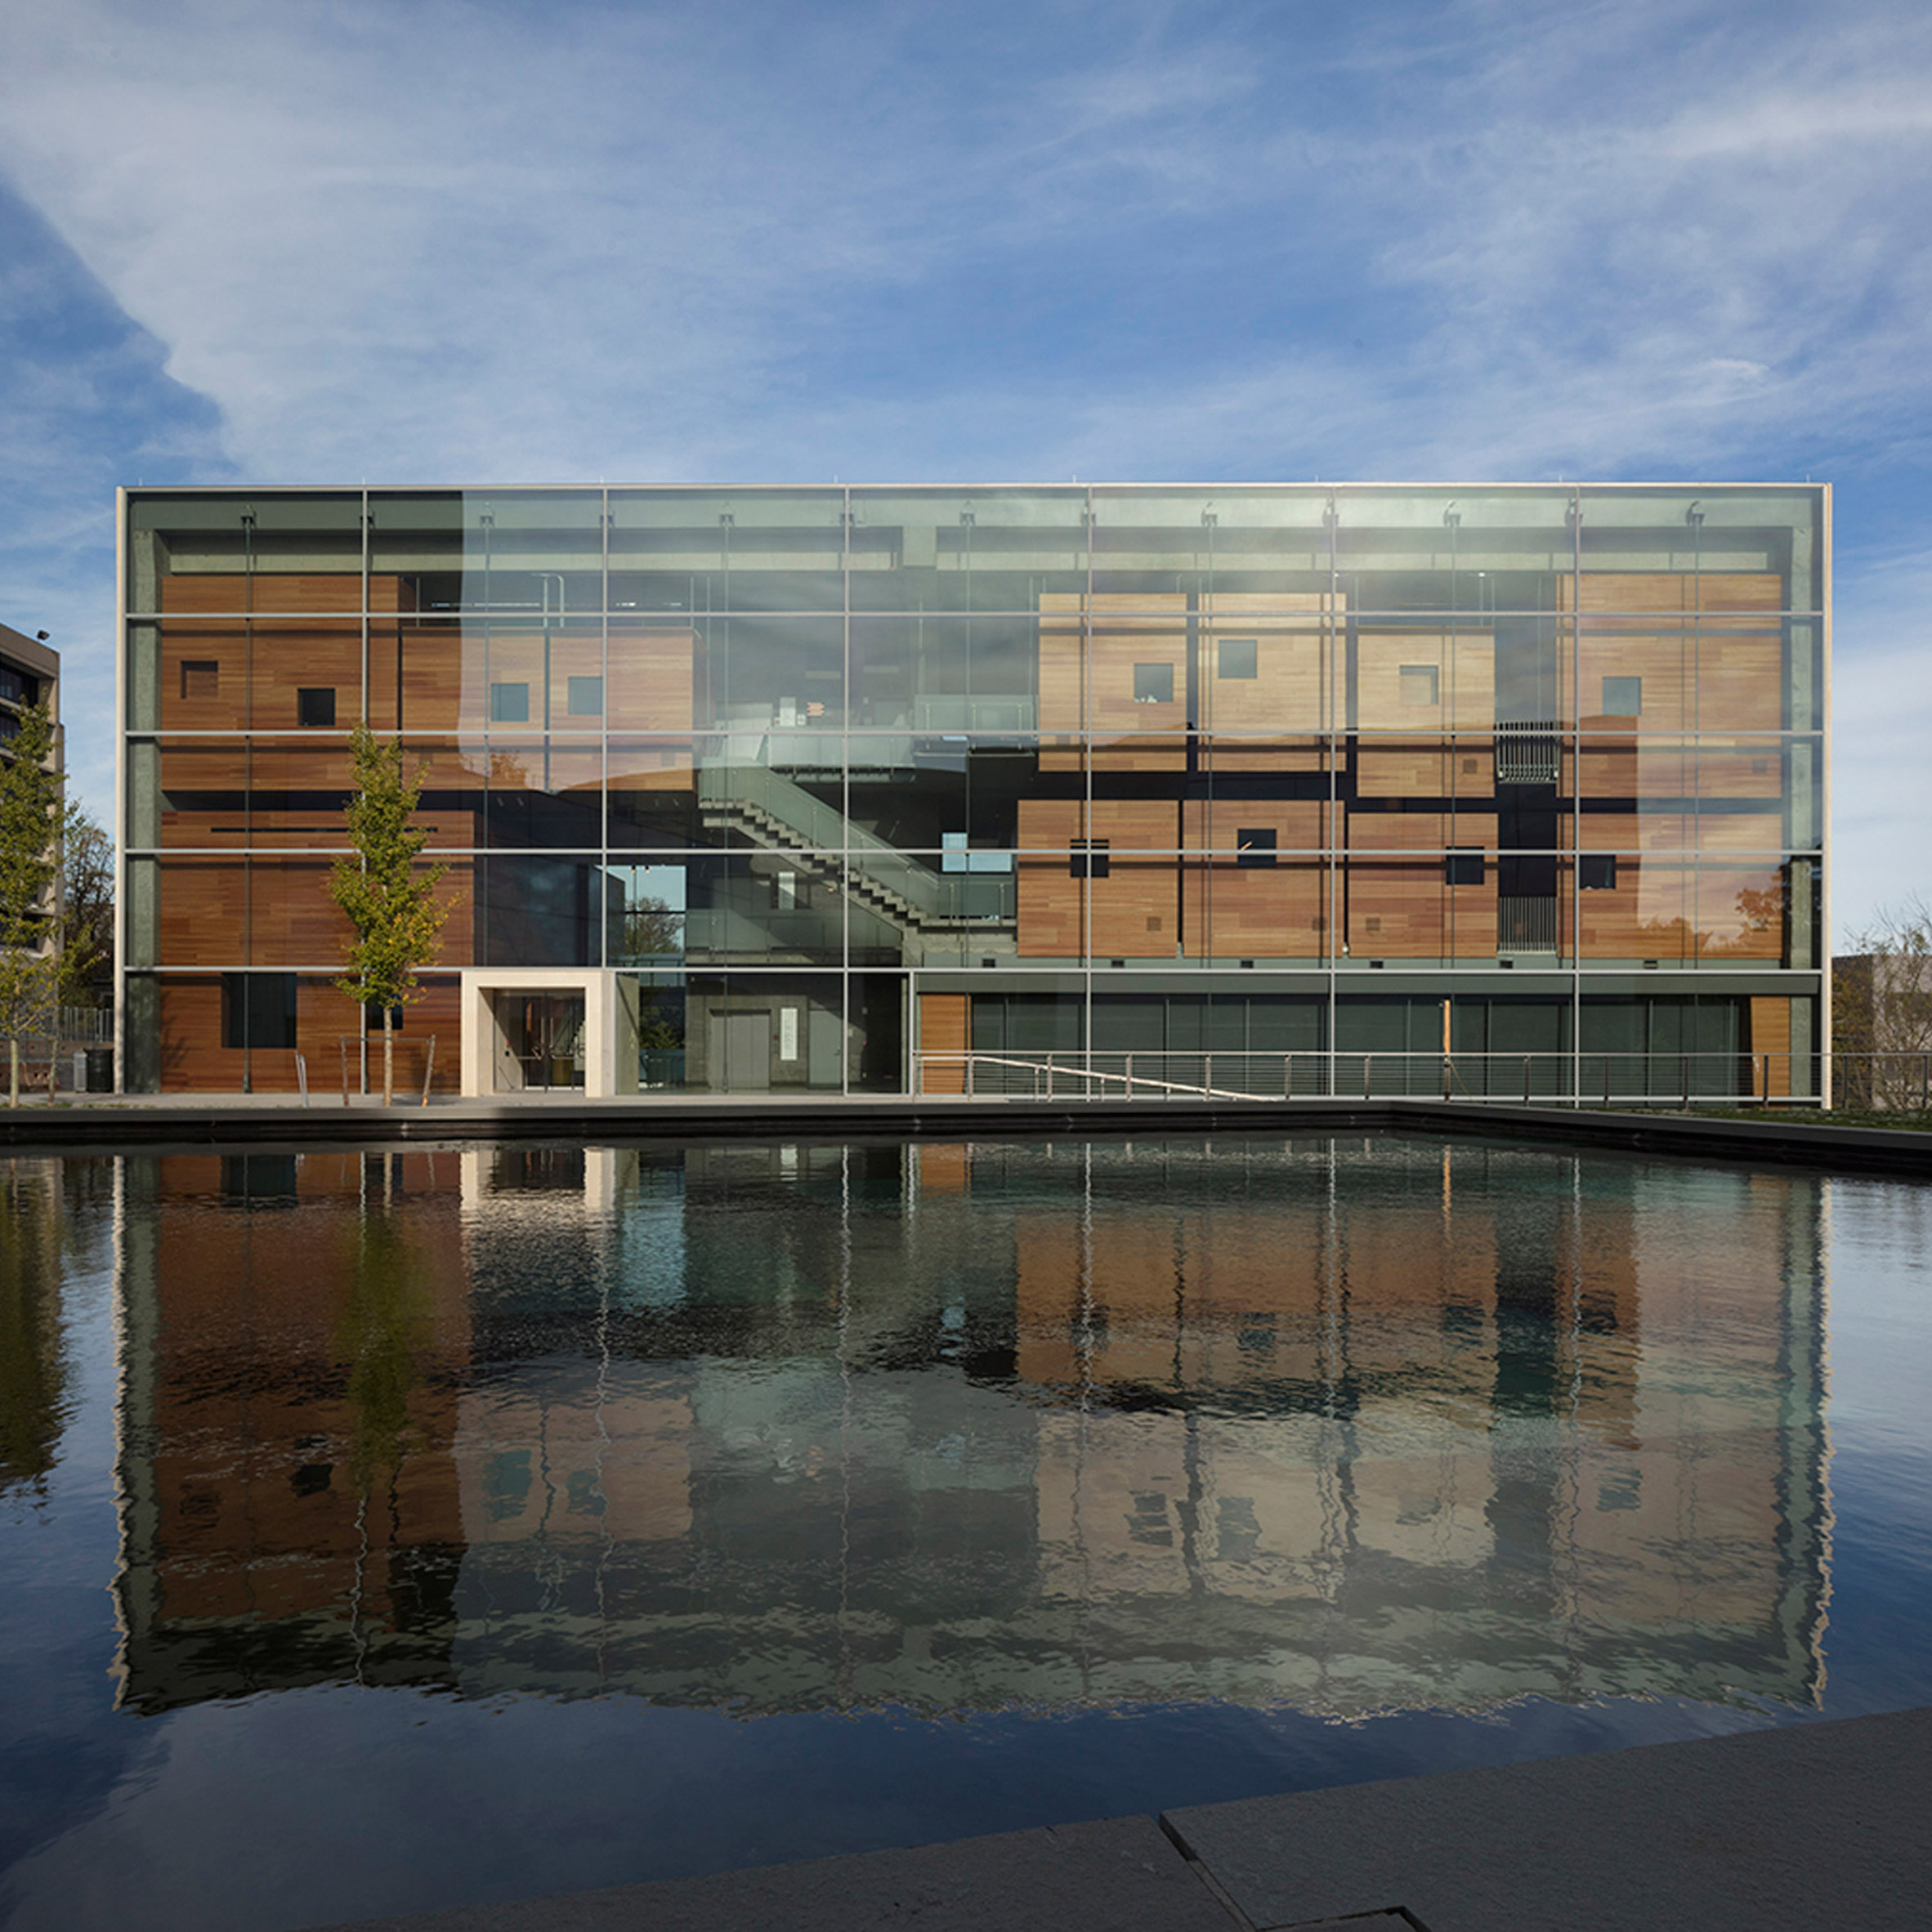 Lewis Arts Complex At Princeton University By Steven Holl Architects